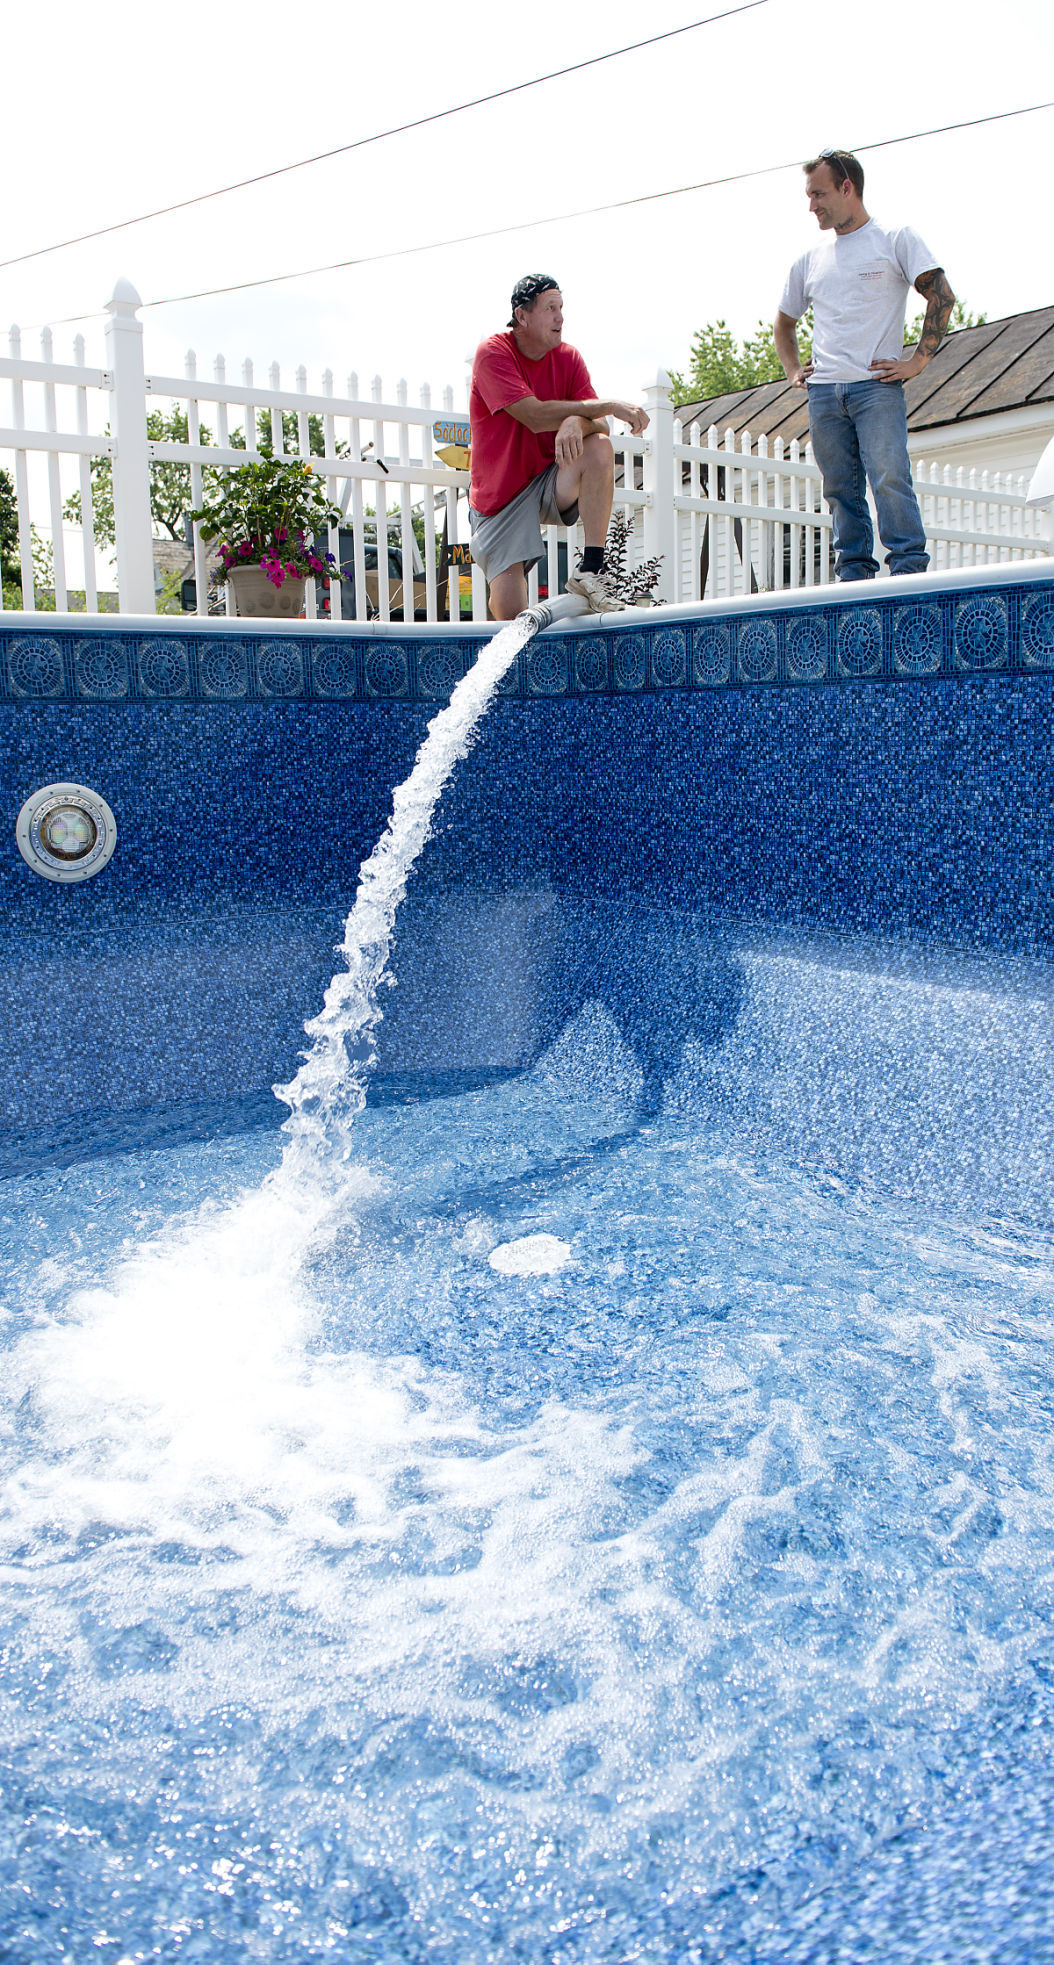 Backyard pools can become at home vacation spots economy for Swimmingpool billig